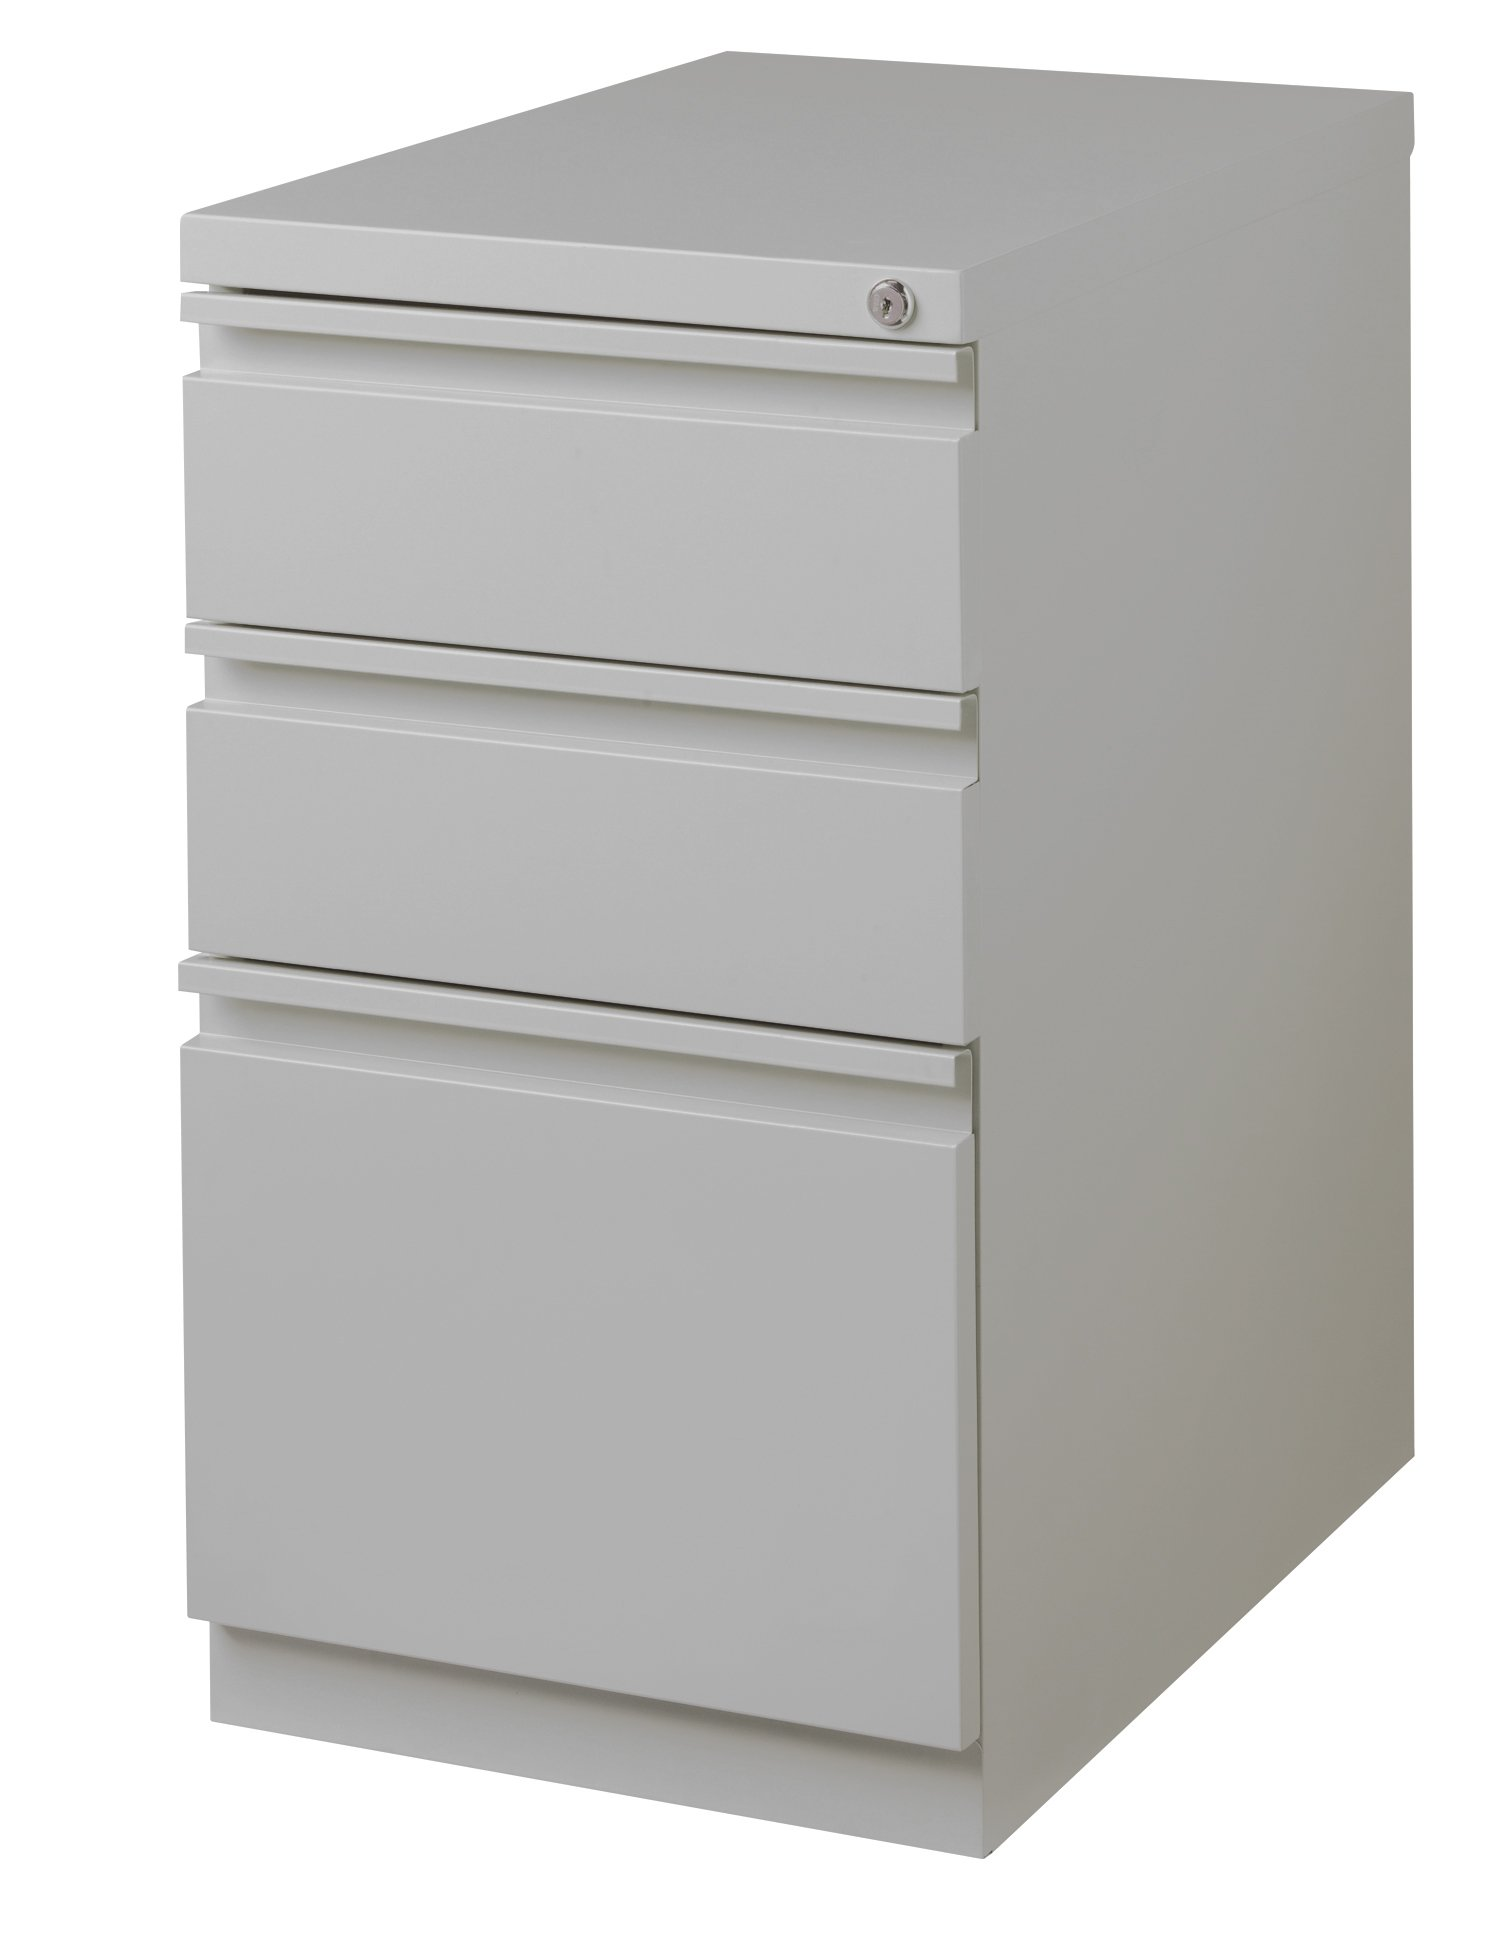 Office Dimensions Commercial Grade 20'' Deep Mobile Pedestal File Cabinet, 3 Drawers (2 Storage, 1 File), Platinum